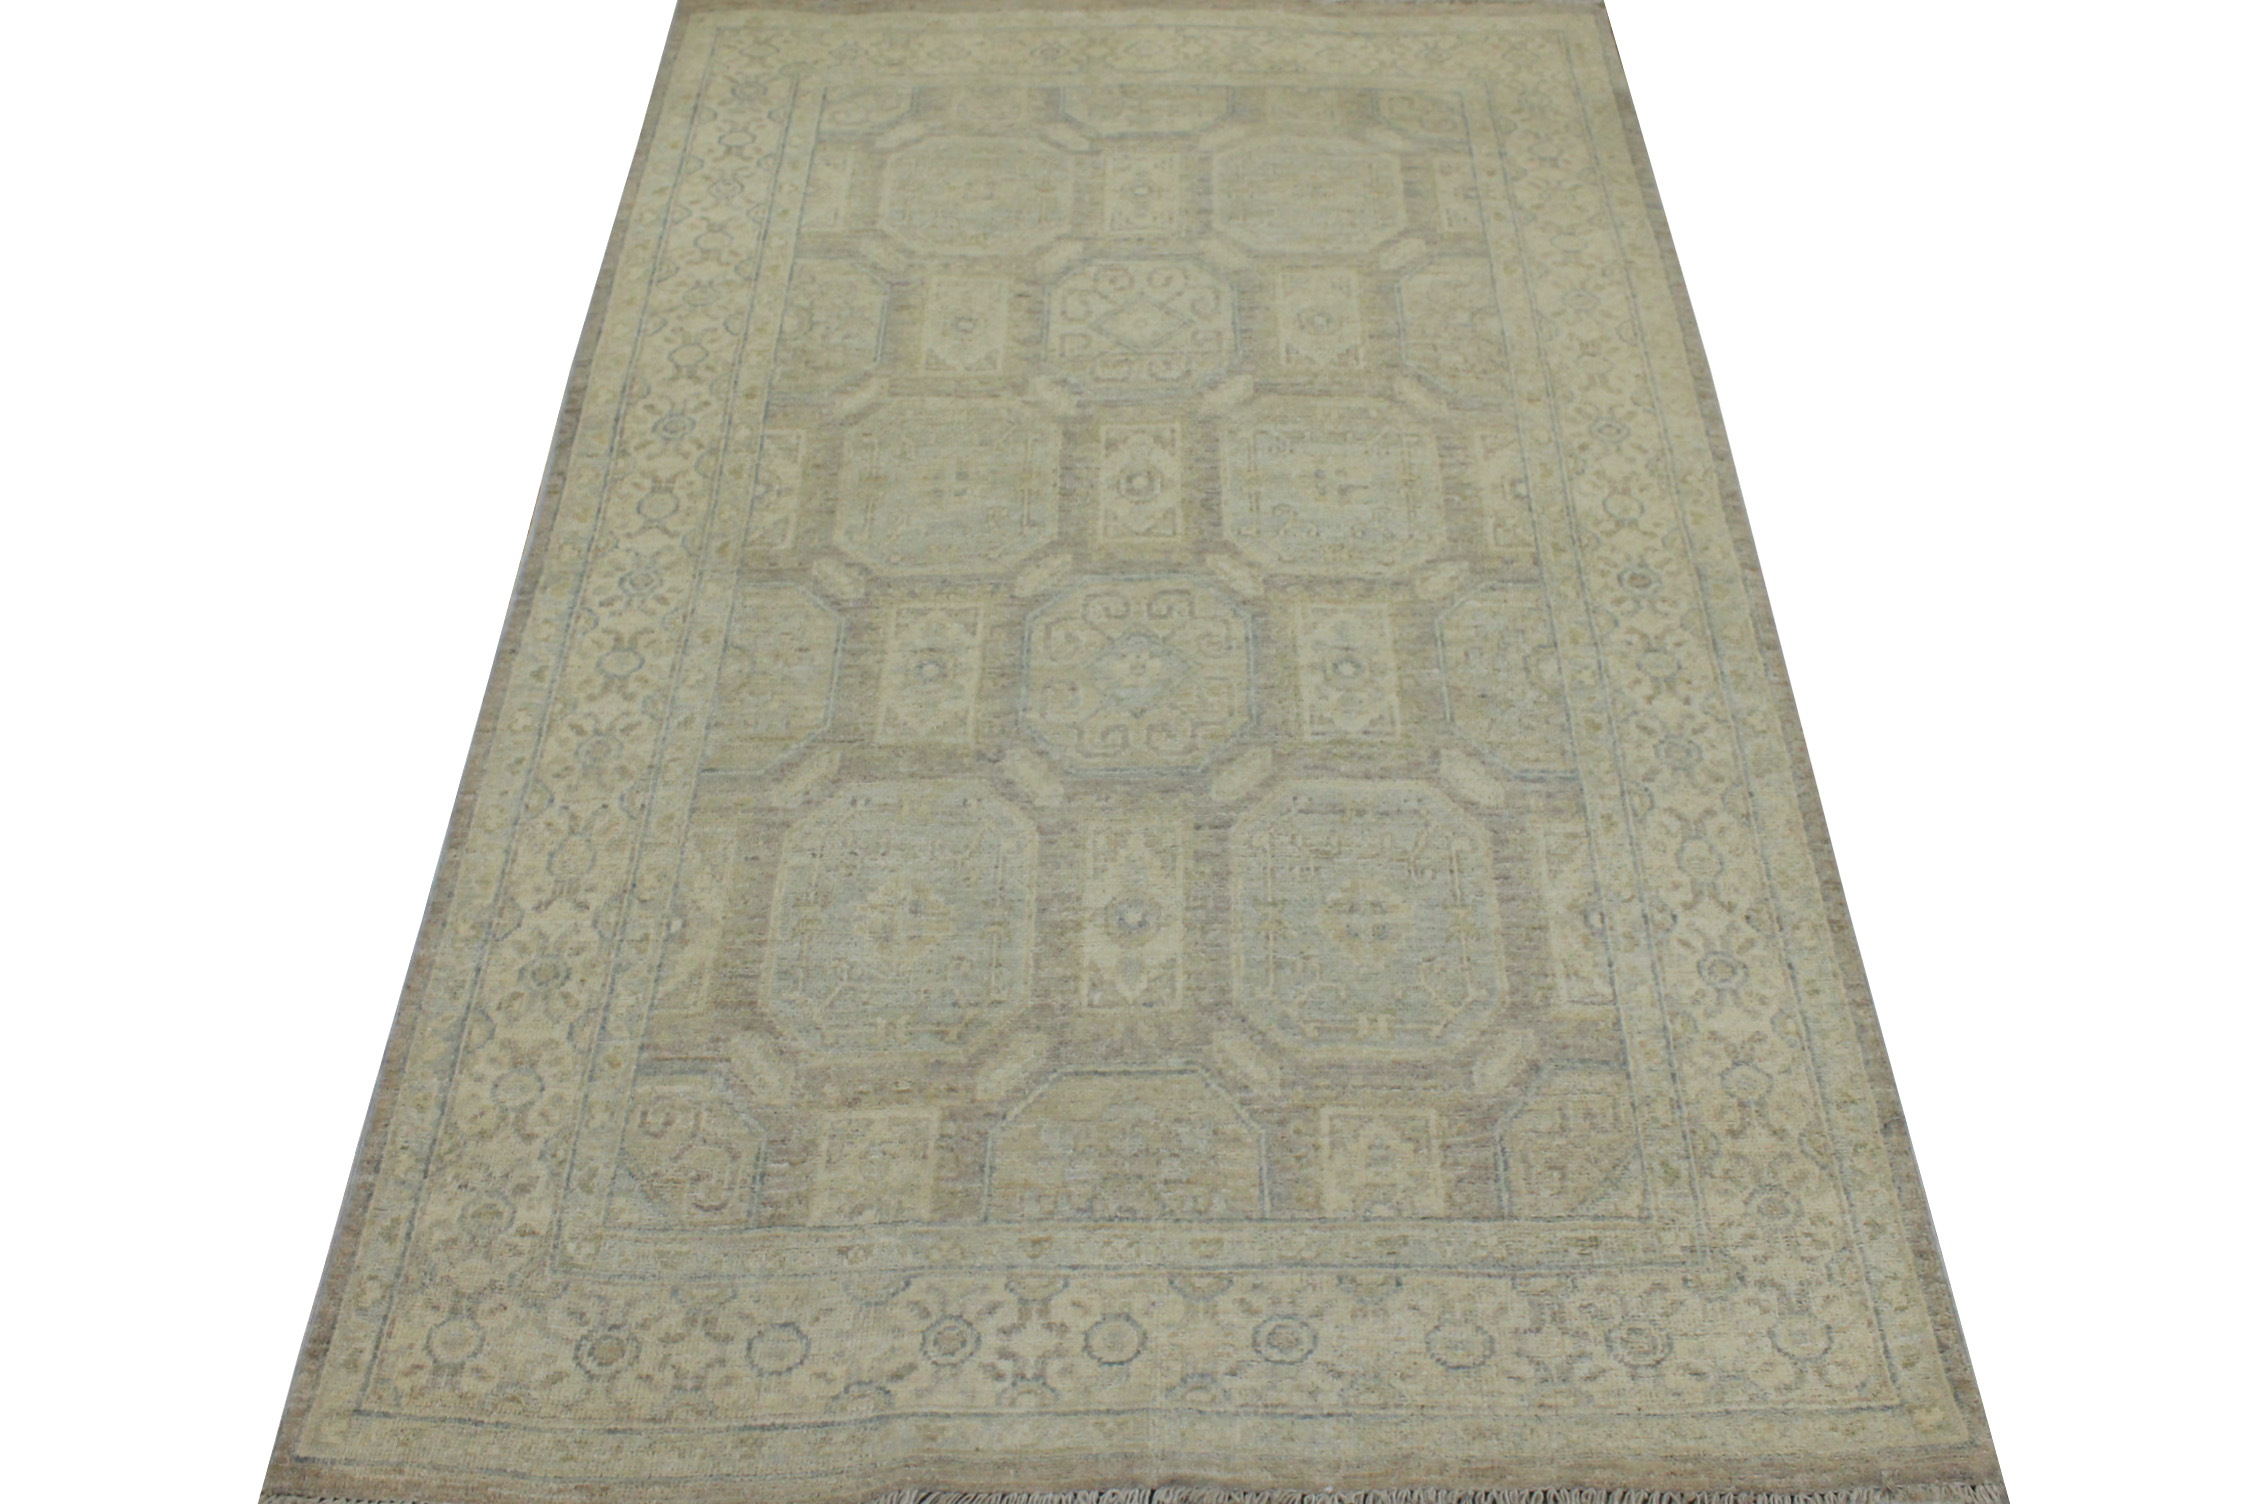 4x6 Peshawar Hand Knotted Wool Area Rug - MR19247